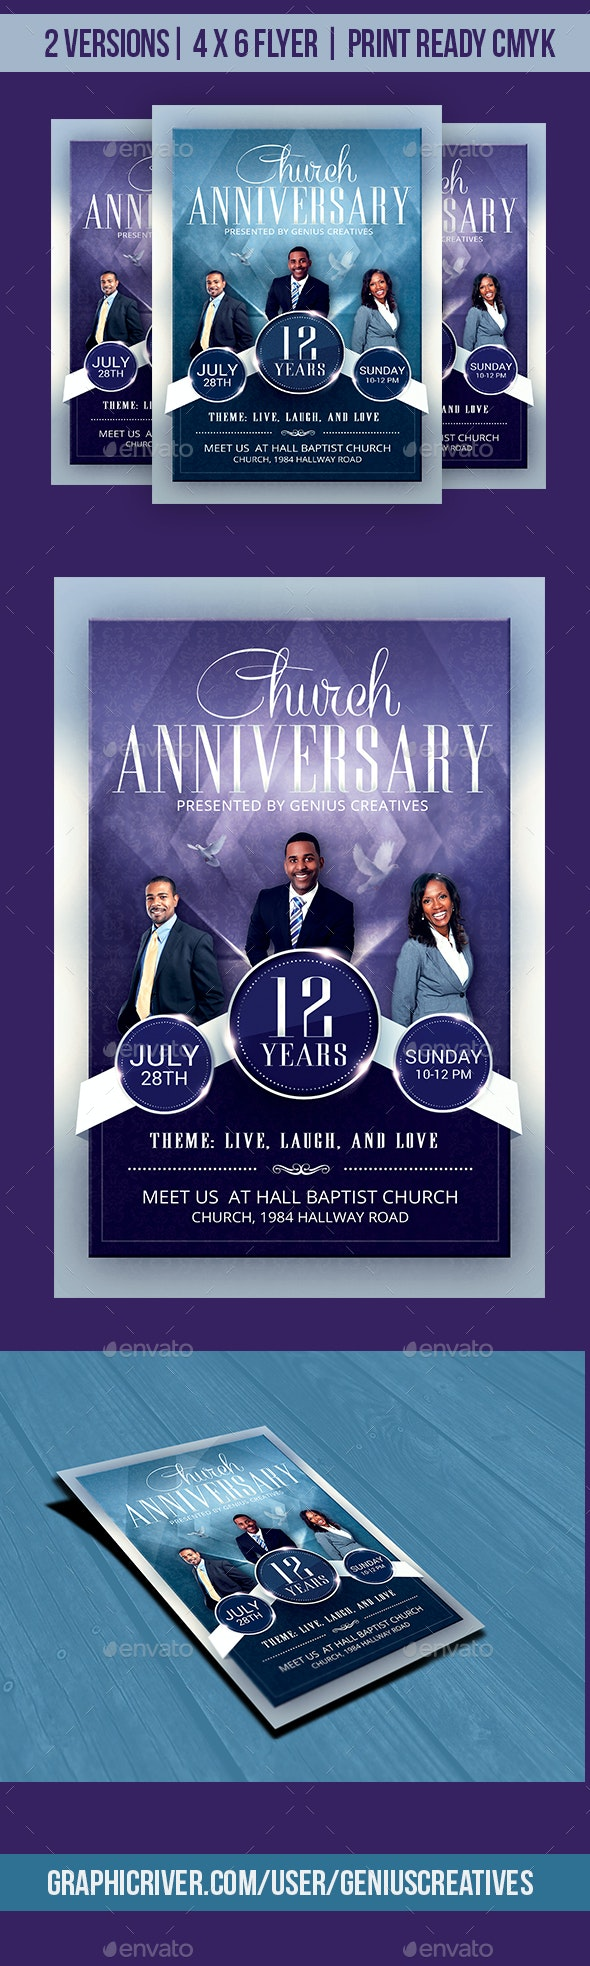 Church Anniversary Flyer Template - Church Flyers